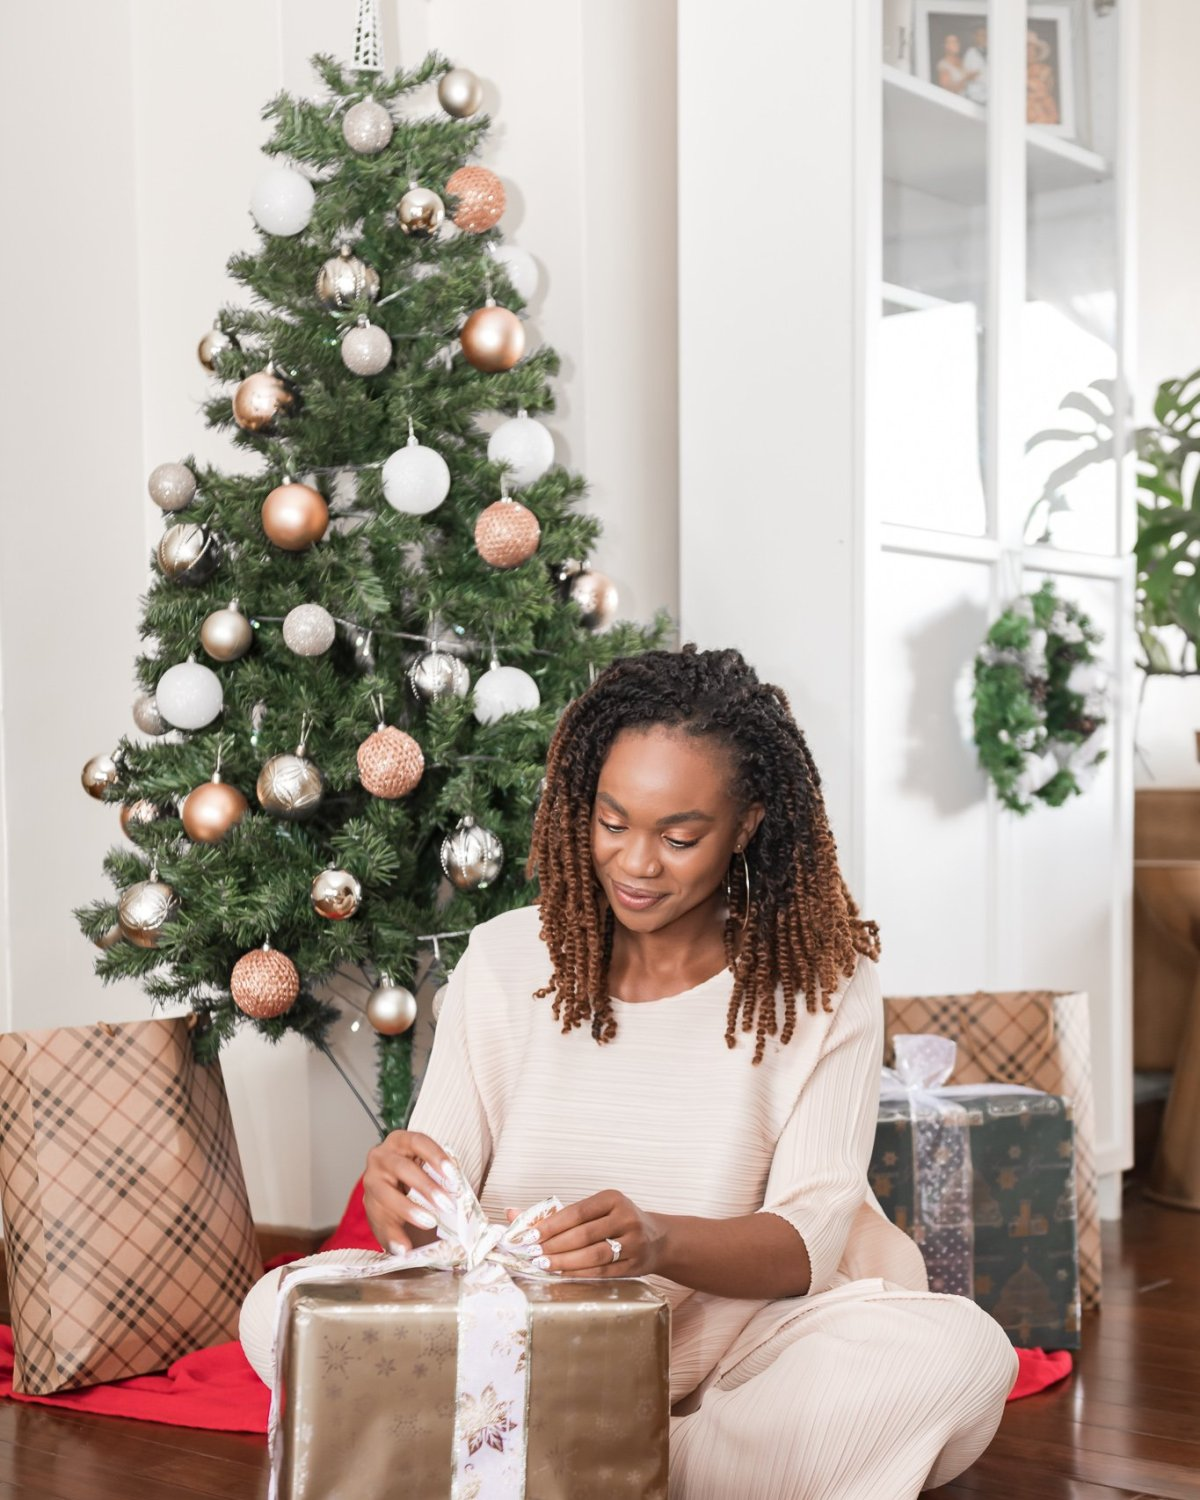 Ijeoma Kola untying bow on gold box in front of decorated Christmas tree